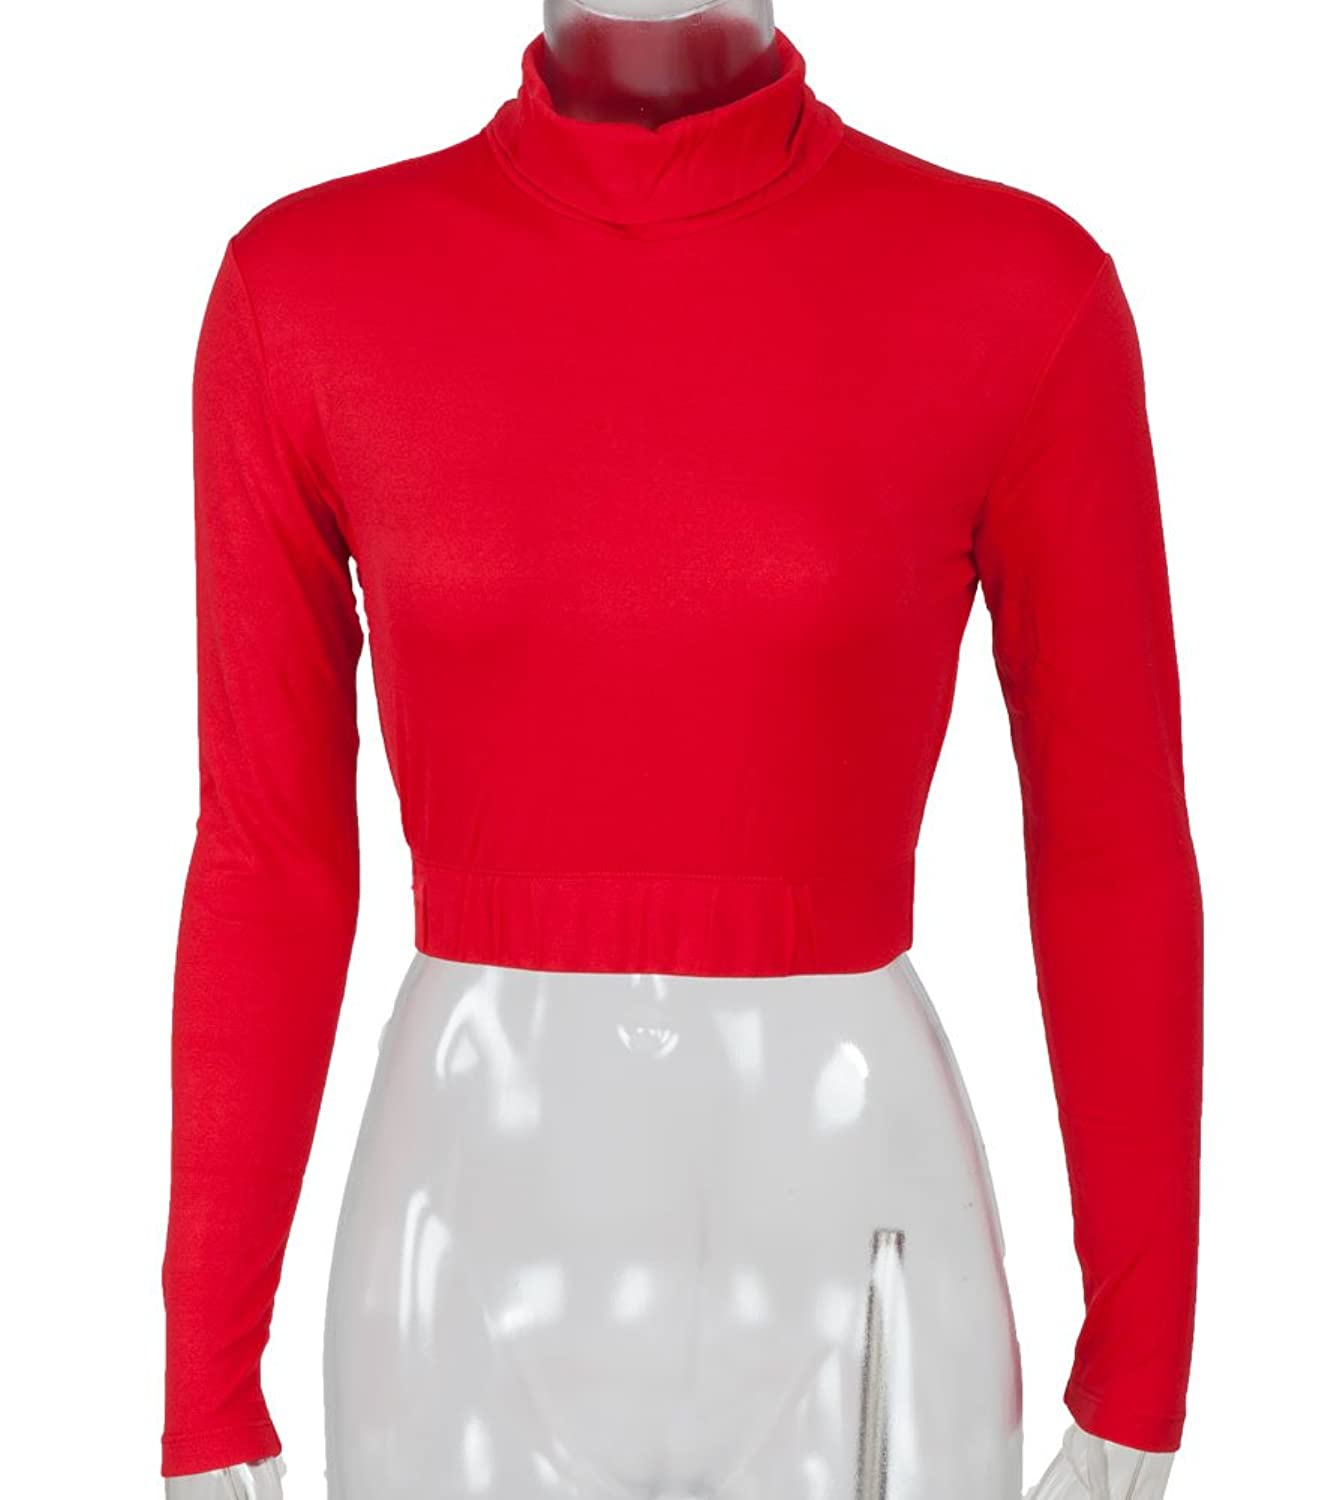 Turtleneck Midriff Size Large Red